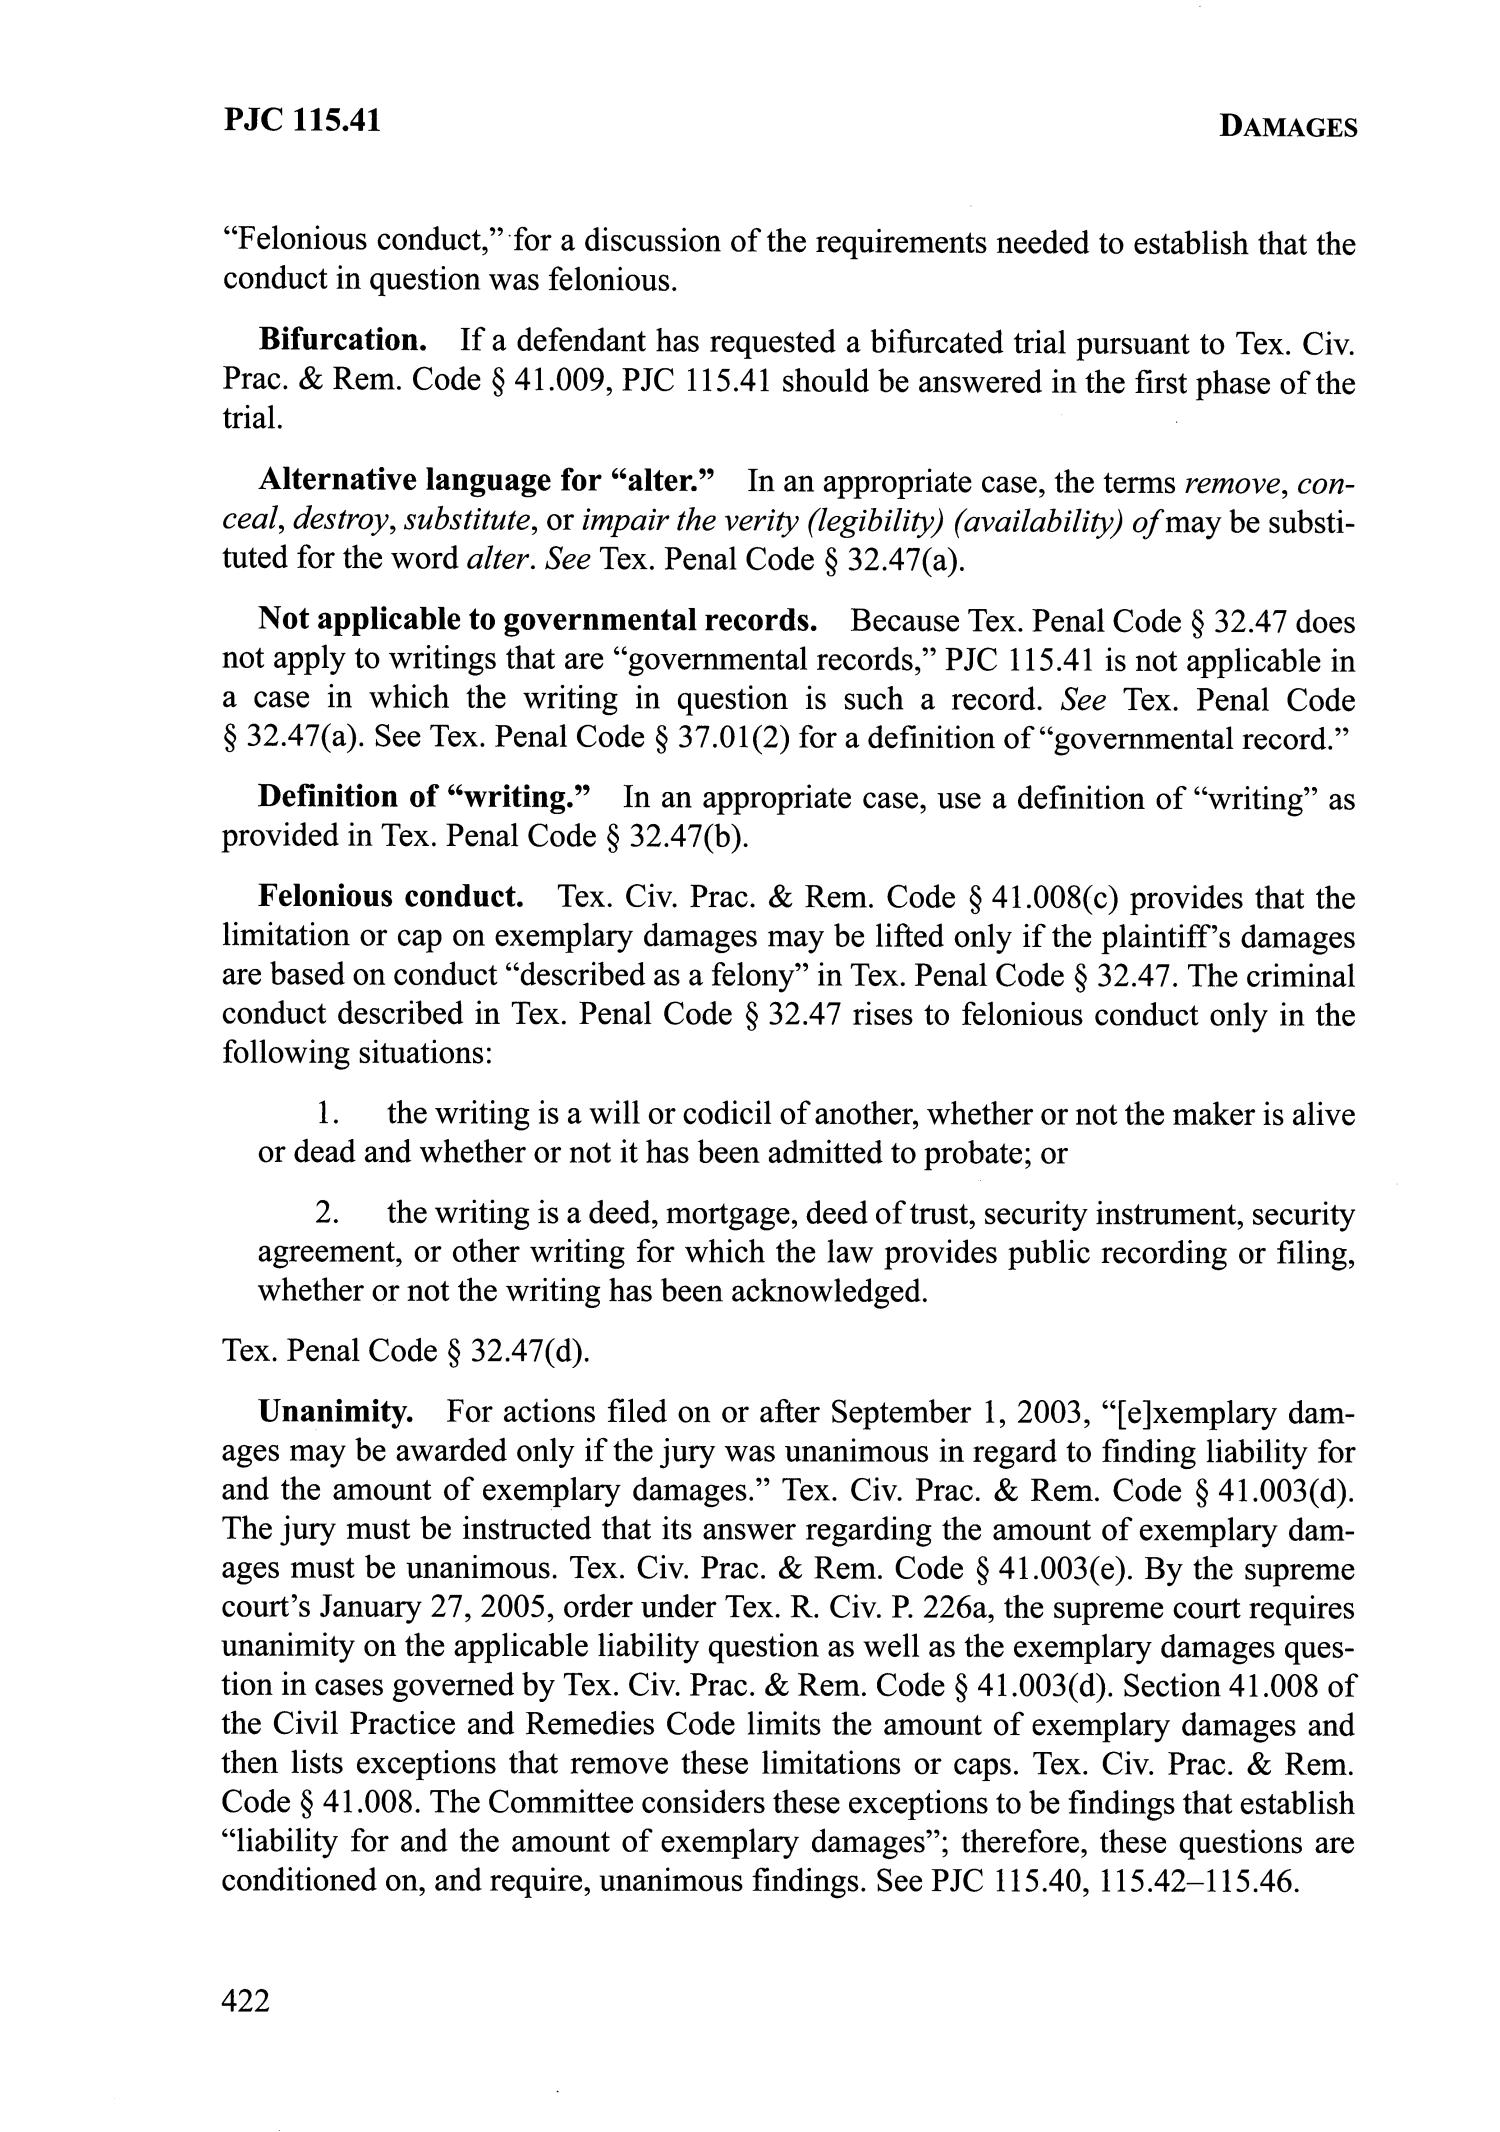 Texas Pattern Jury Charges: Business, Consumer, Insurance U0026 Employment    Page 422   The Portal To Texas History